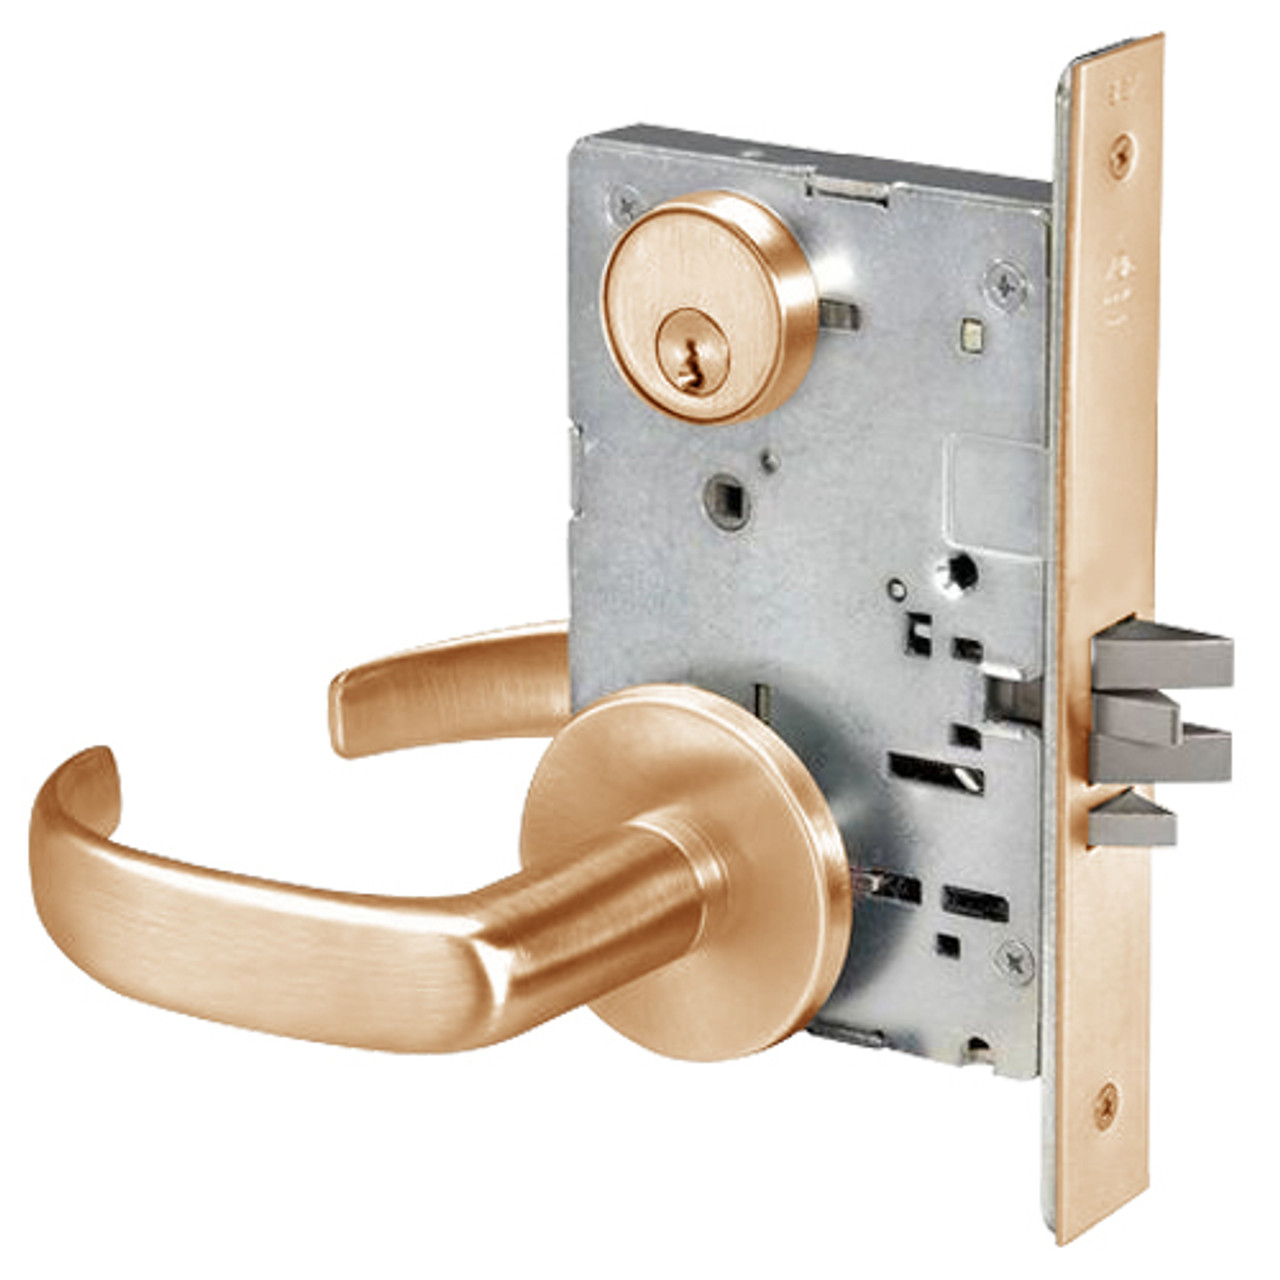 pbr8809fl 612 yale 8800fl series single cylinder mortise classroom w thumbturn locks with pacific beach lever in satin bronze lock depot inc [ 1280 x 1280 Pixel ]